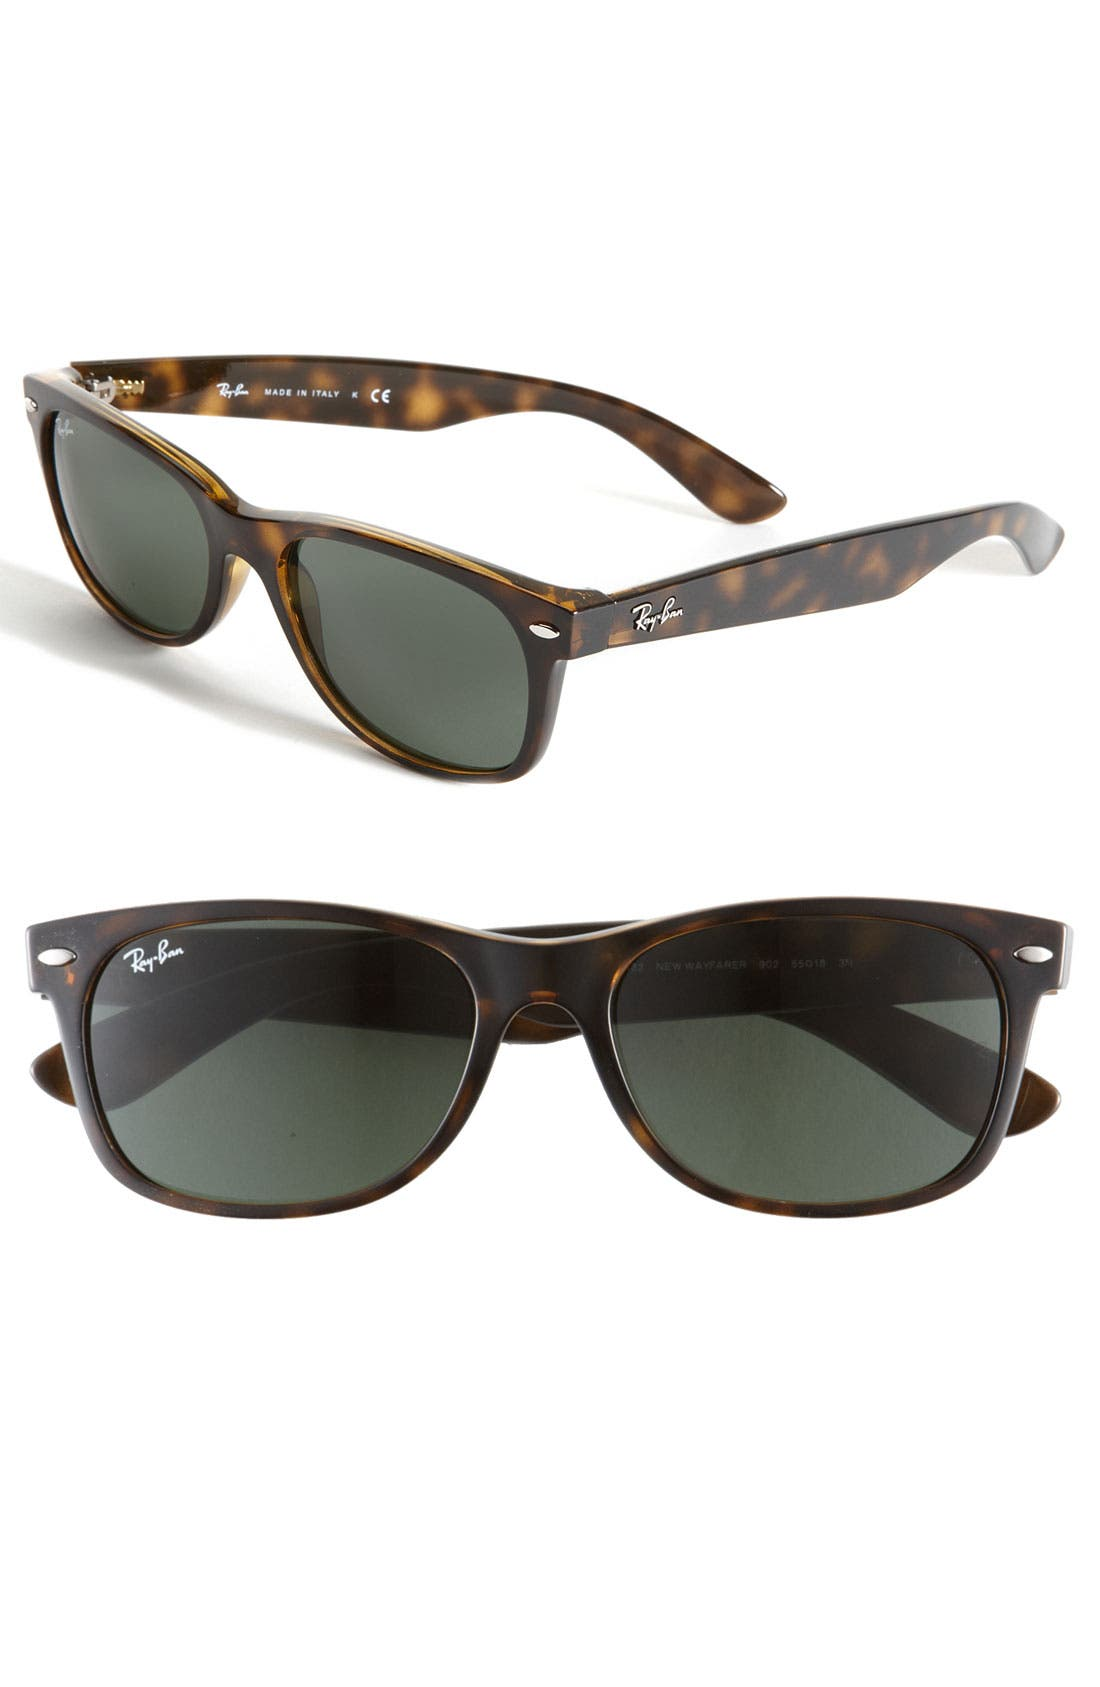 Main Image - Ray-Ban Standard New Wayfarer 55mm Sunglasses